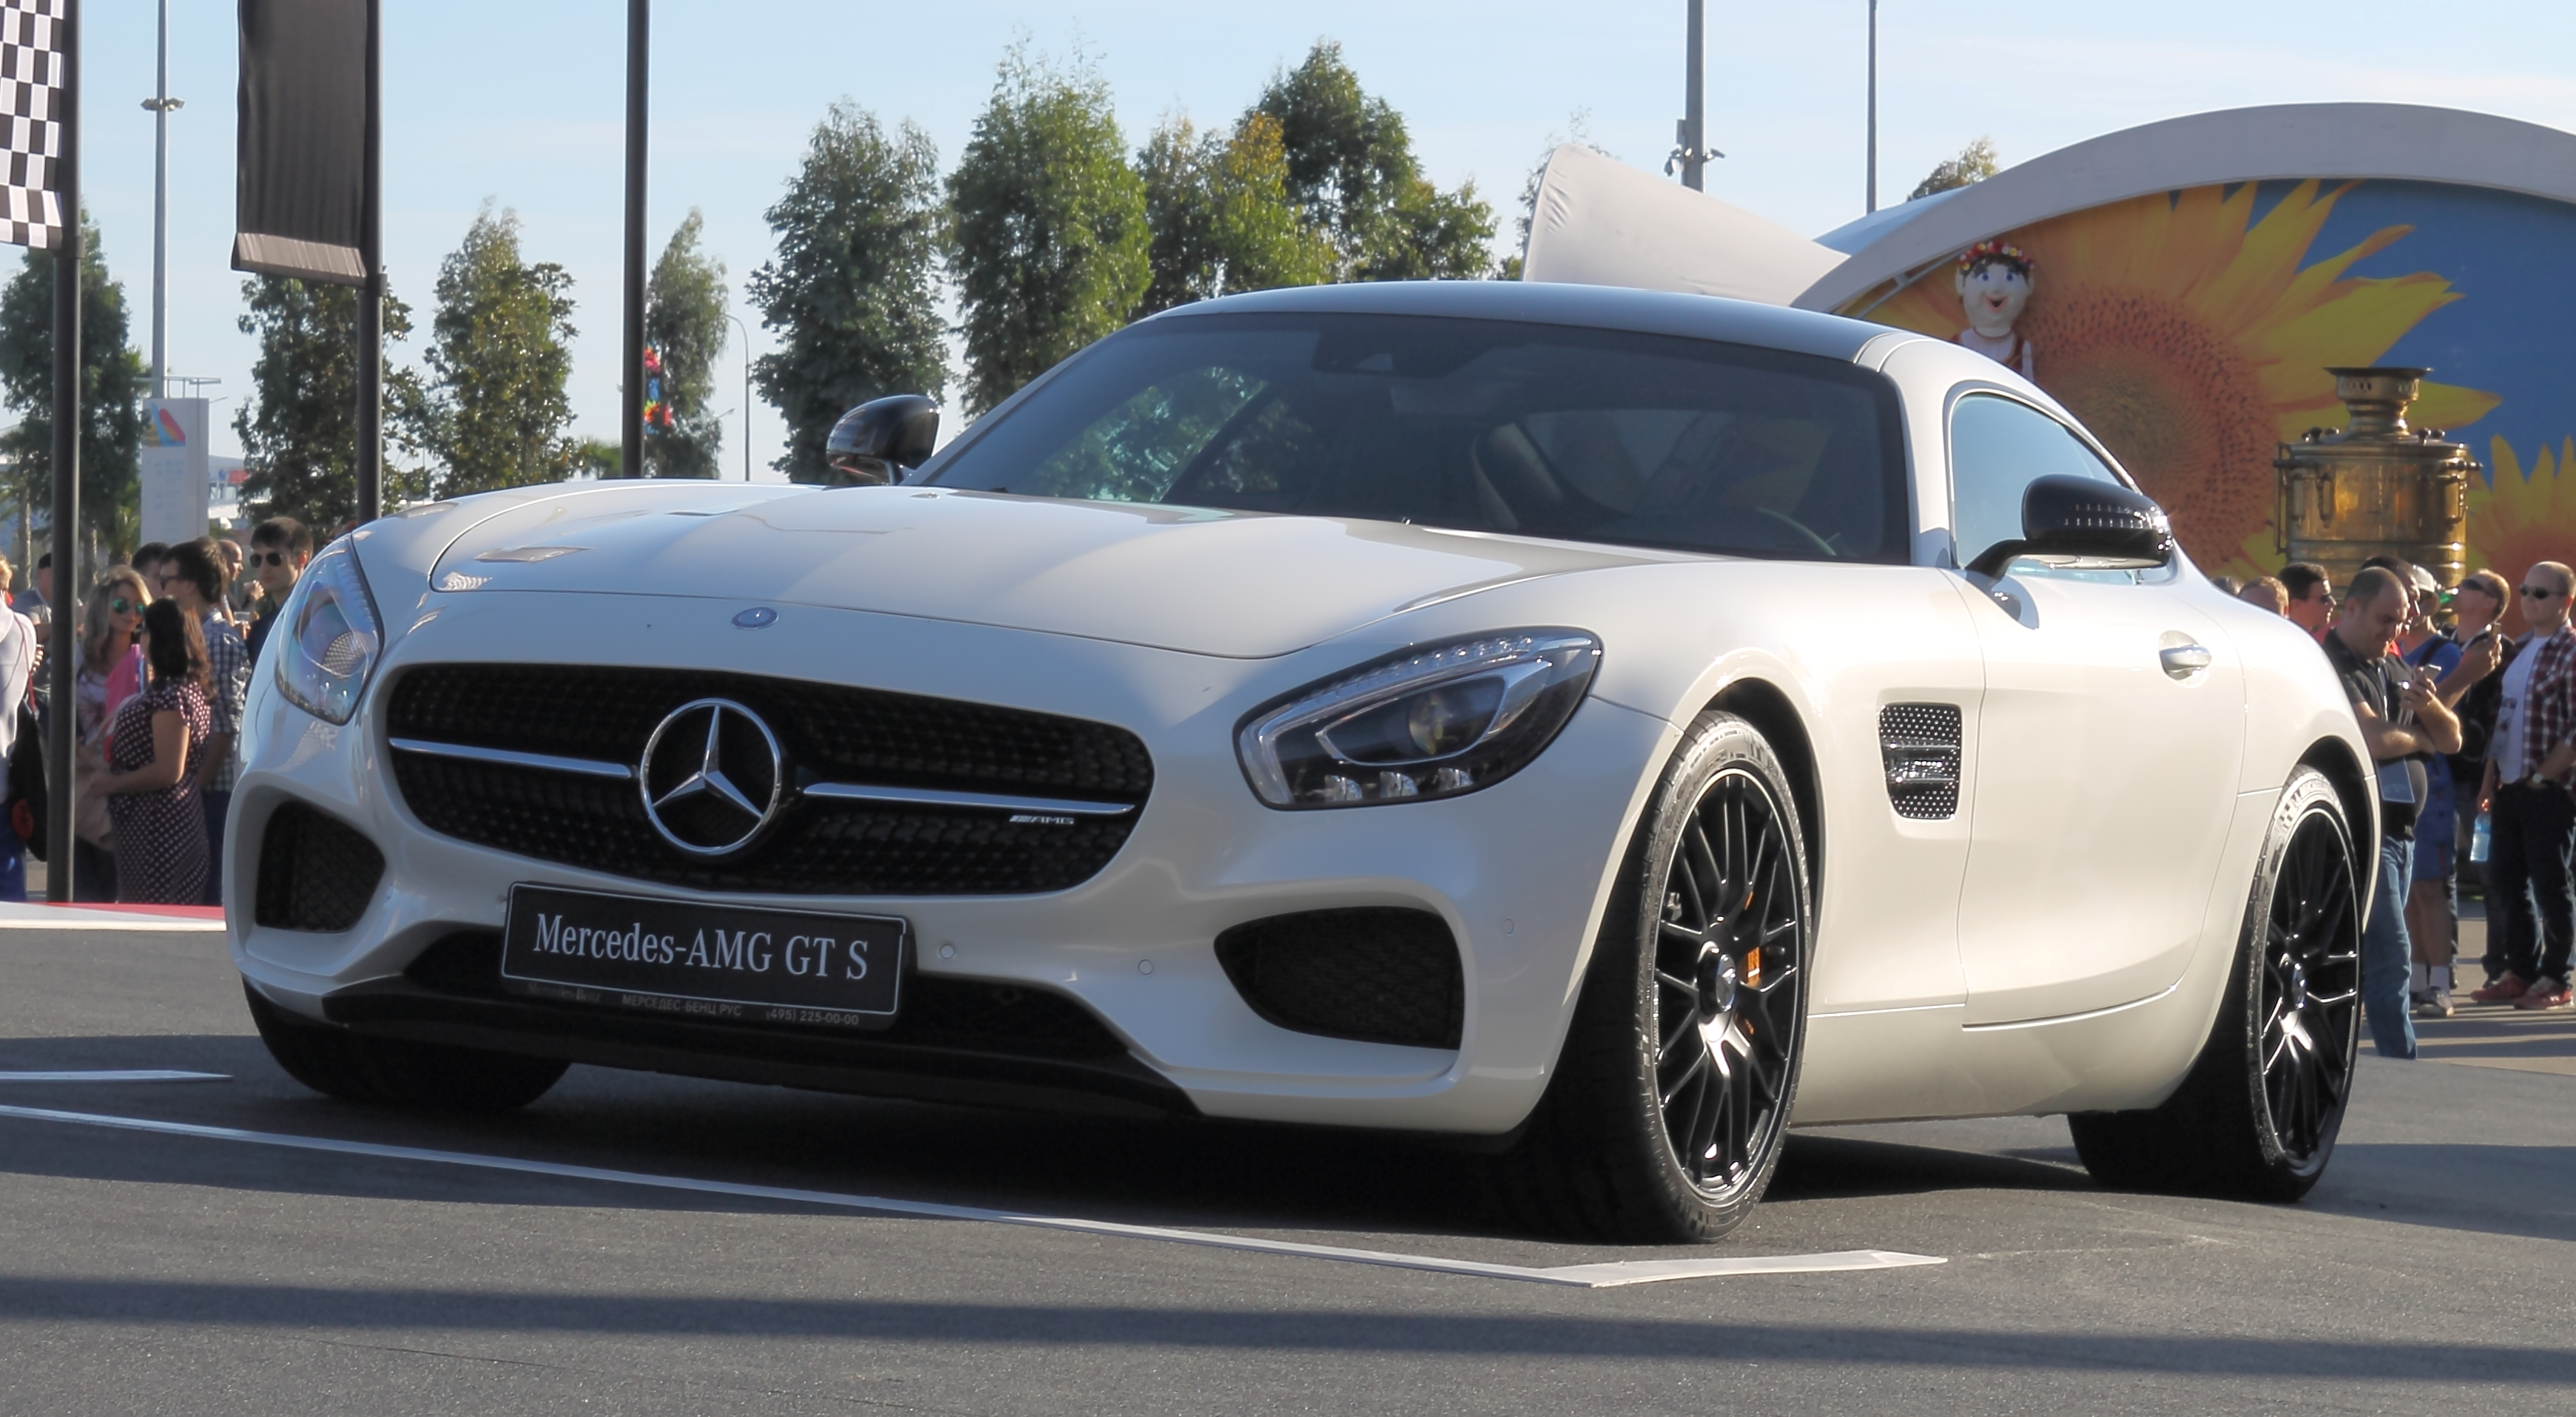 file mercedes amg gt s wikimedia commons. Black Bedroom Furniture Sets. Home Design Ideas